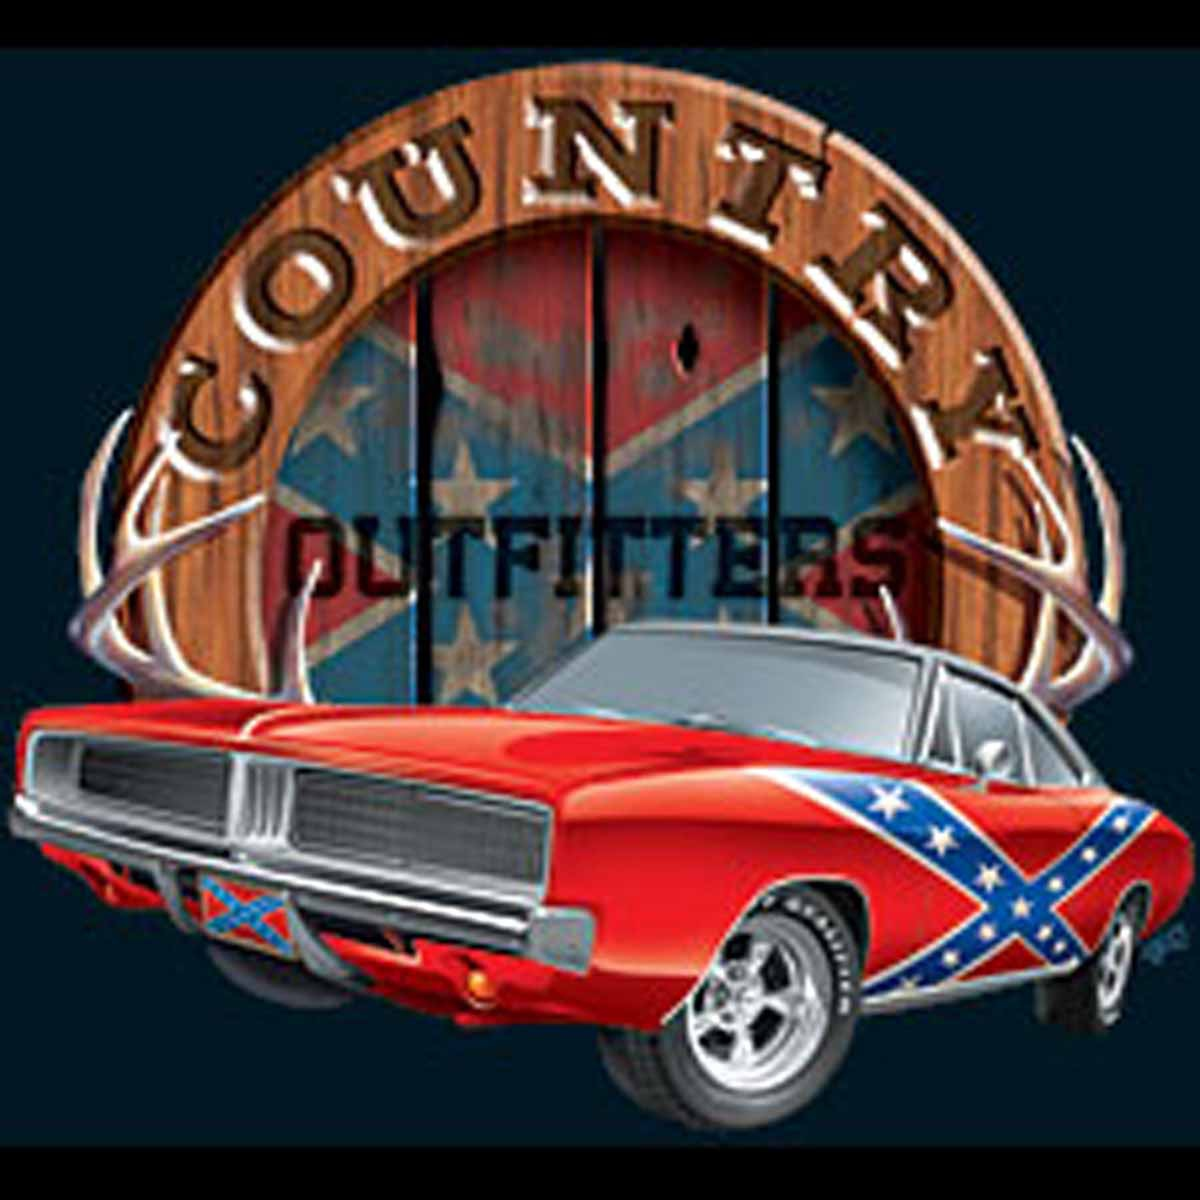 T-shirt homme manches courtes - COUNTRY OUTFITTERS - 11977 -  drapeau sudiste voiture américaine - USA